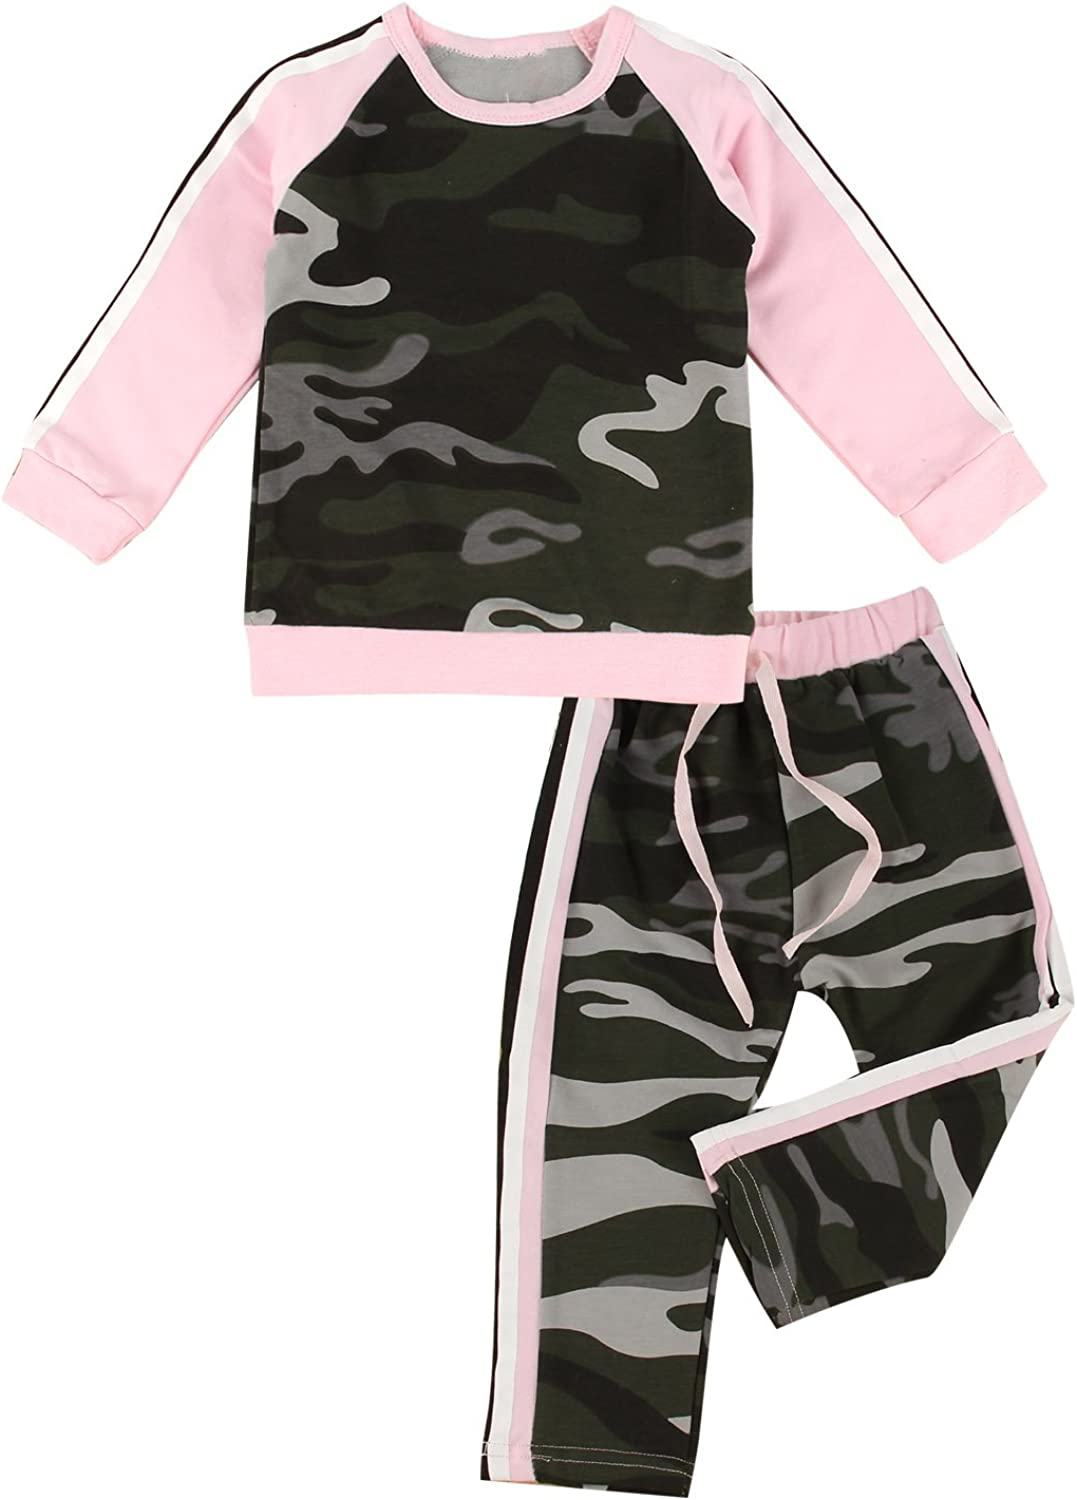 puseky Toddler Baby Girls Camouflage Long Sleeve Shirt & Pants Tracksuit Outfits Set